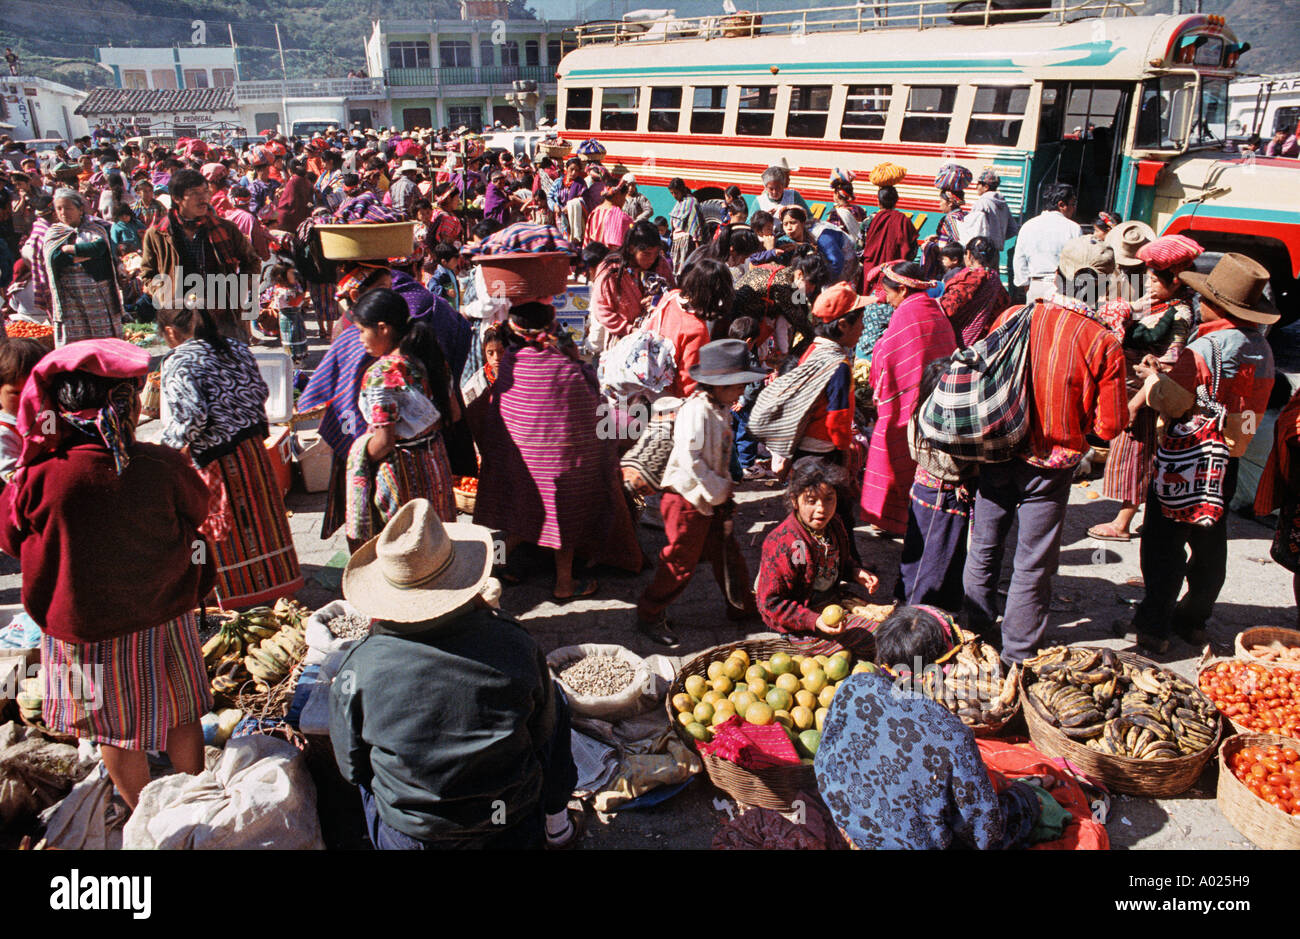 Crowded market scene with bus Zunil town Guatemala Central America - Stock Image